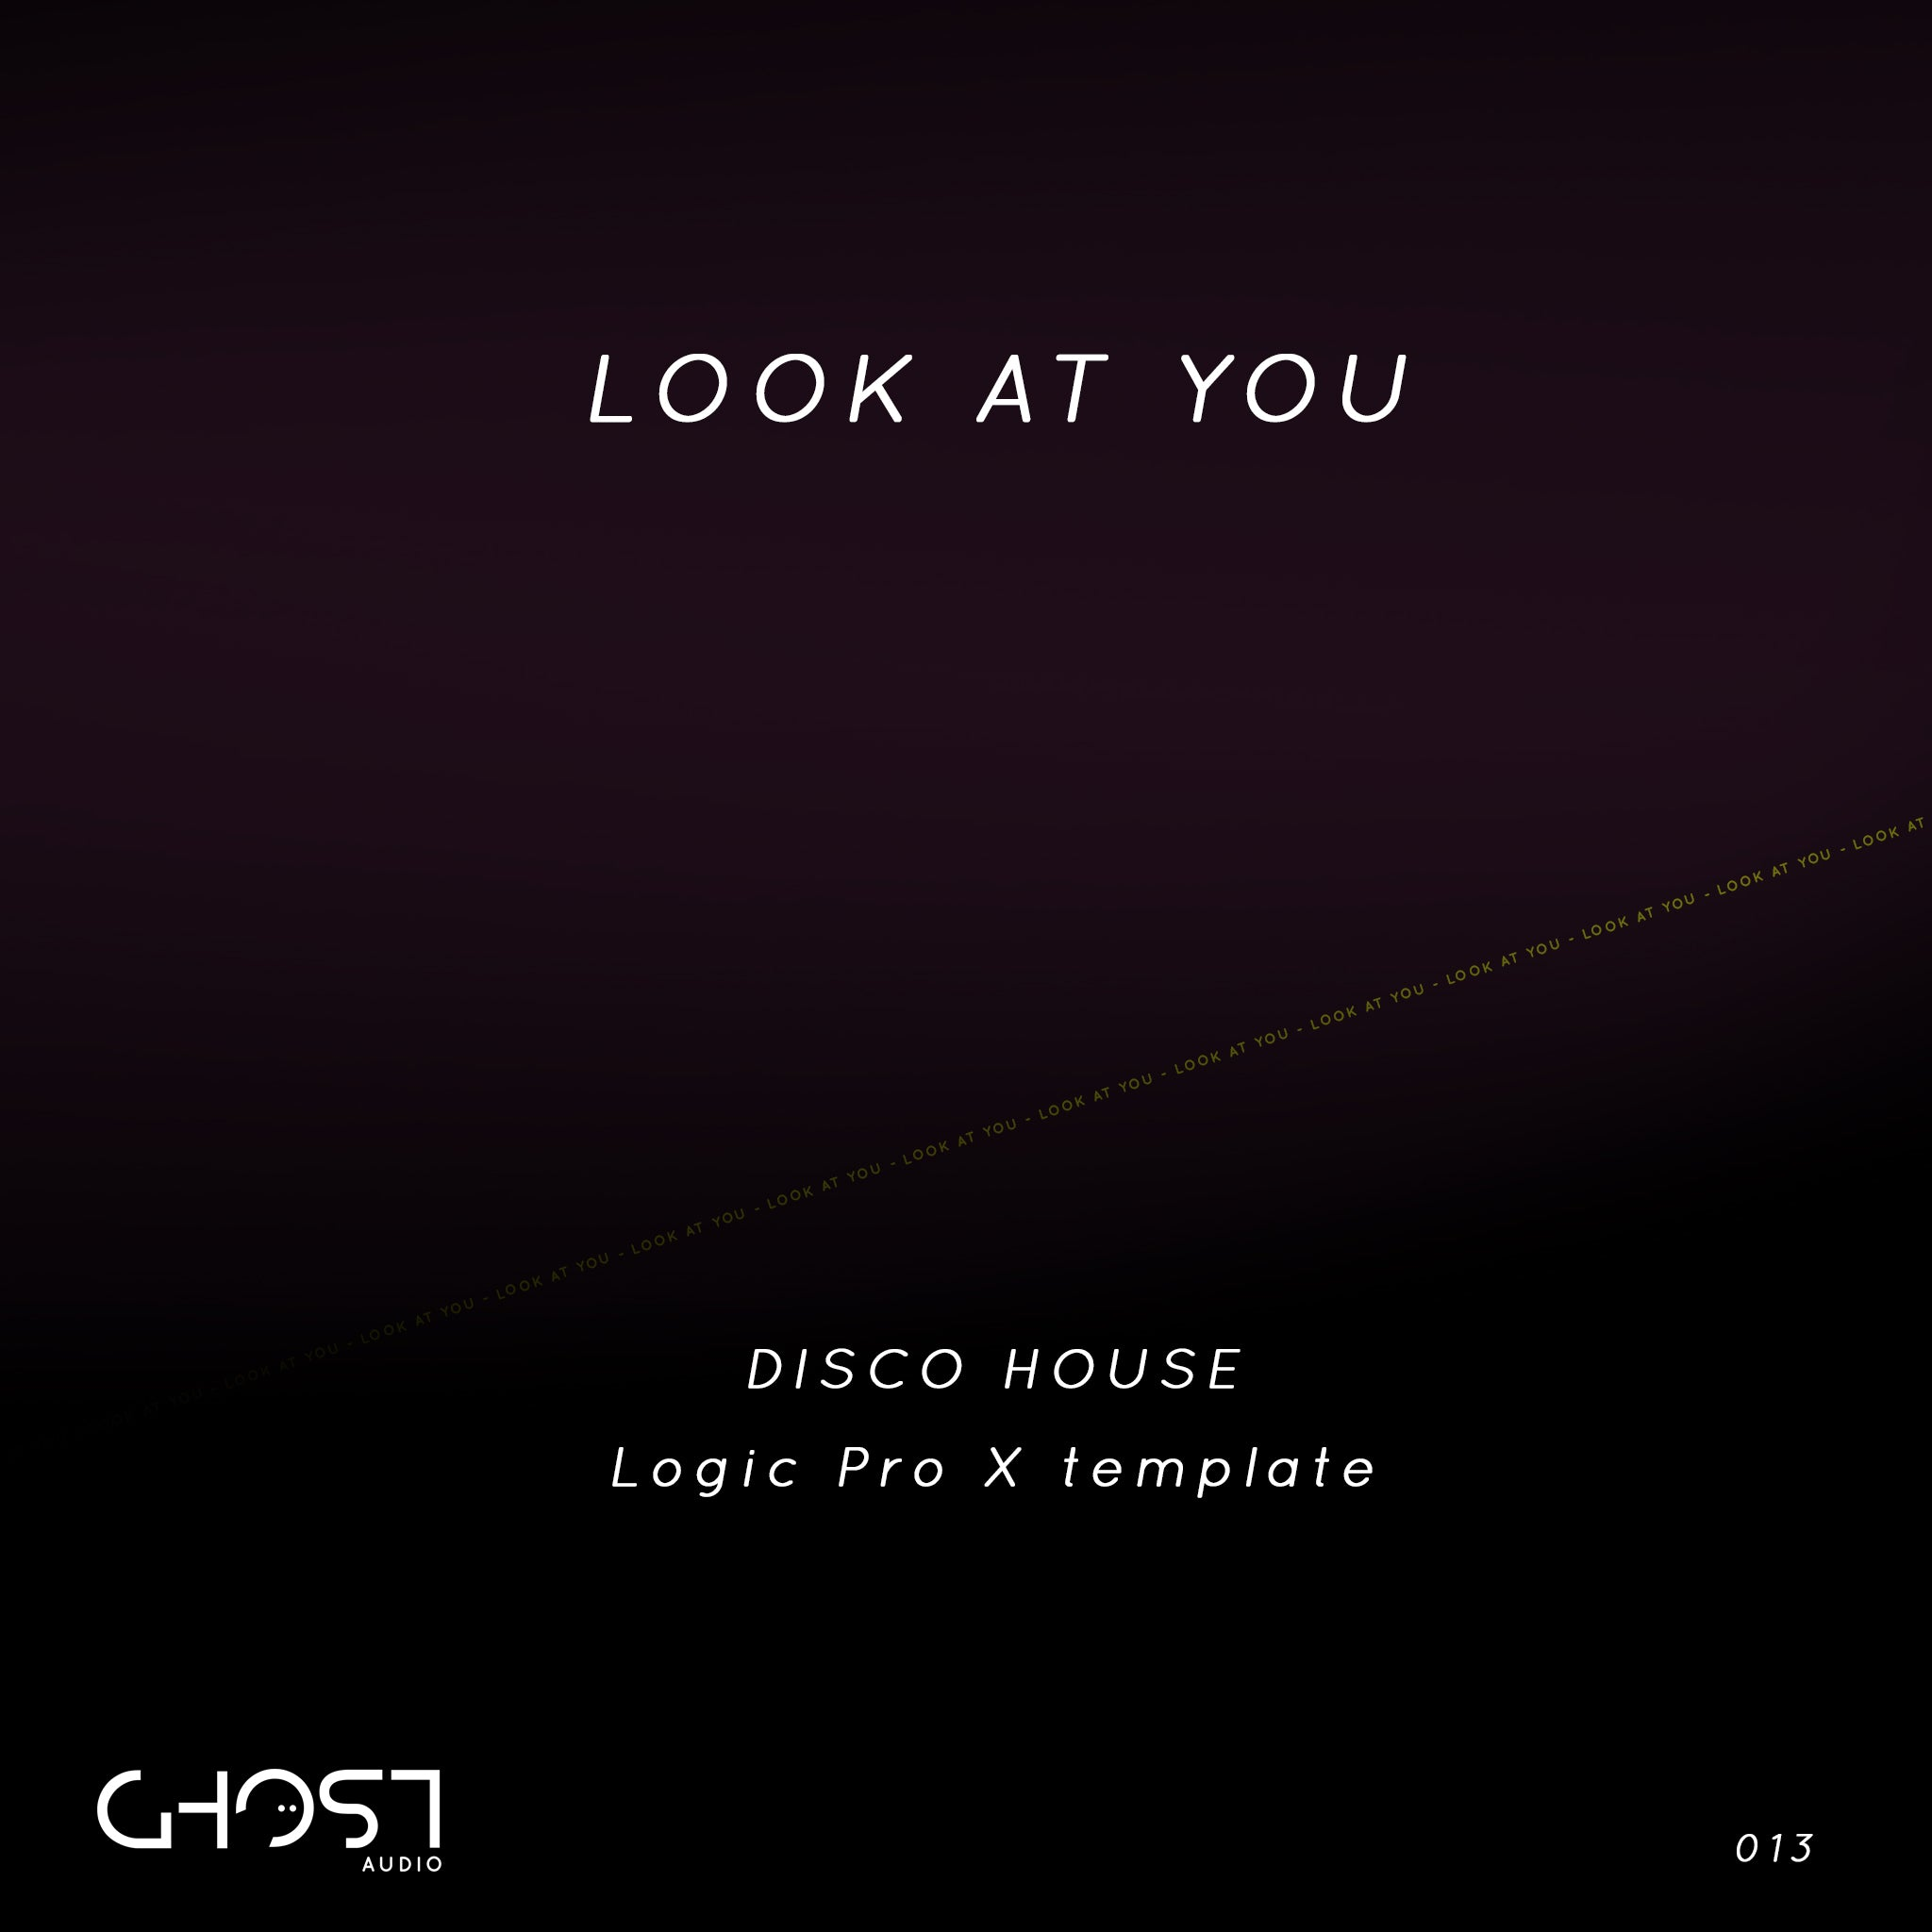 LOOK AT YOU - DISCO HOUSE ( LOGIC PRO X TEMPLATE )